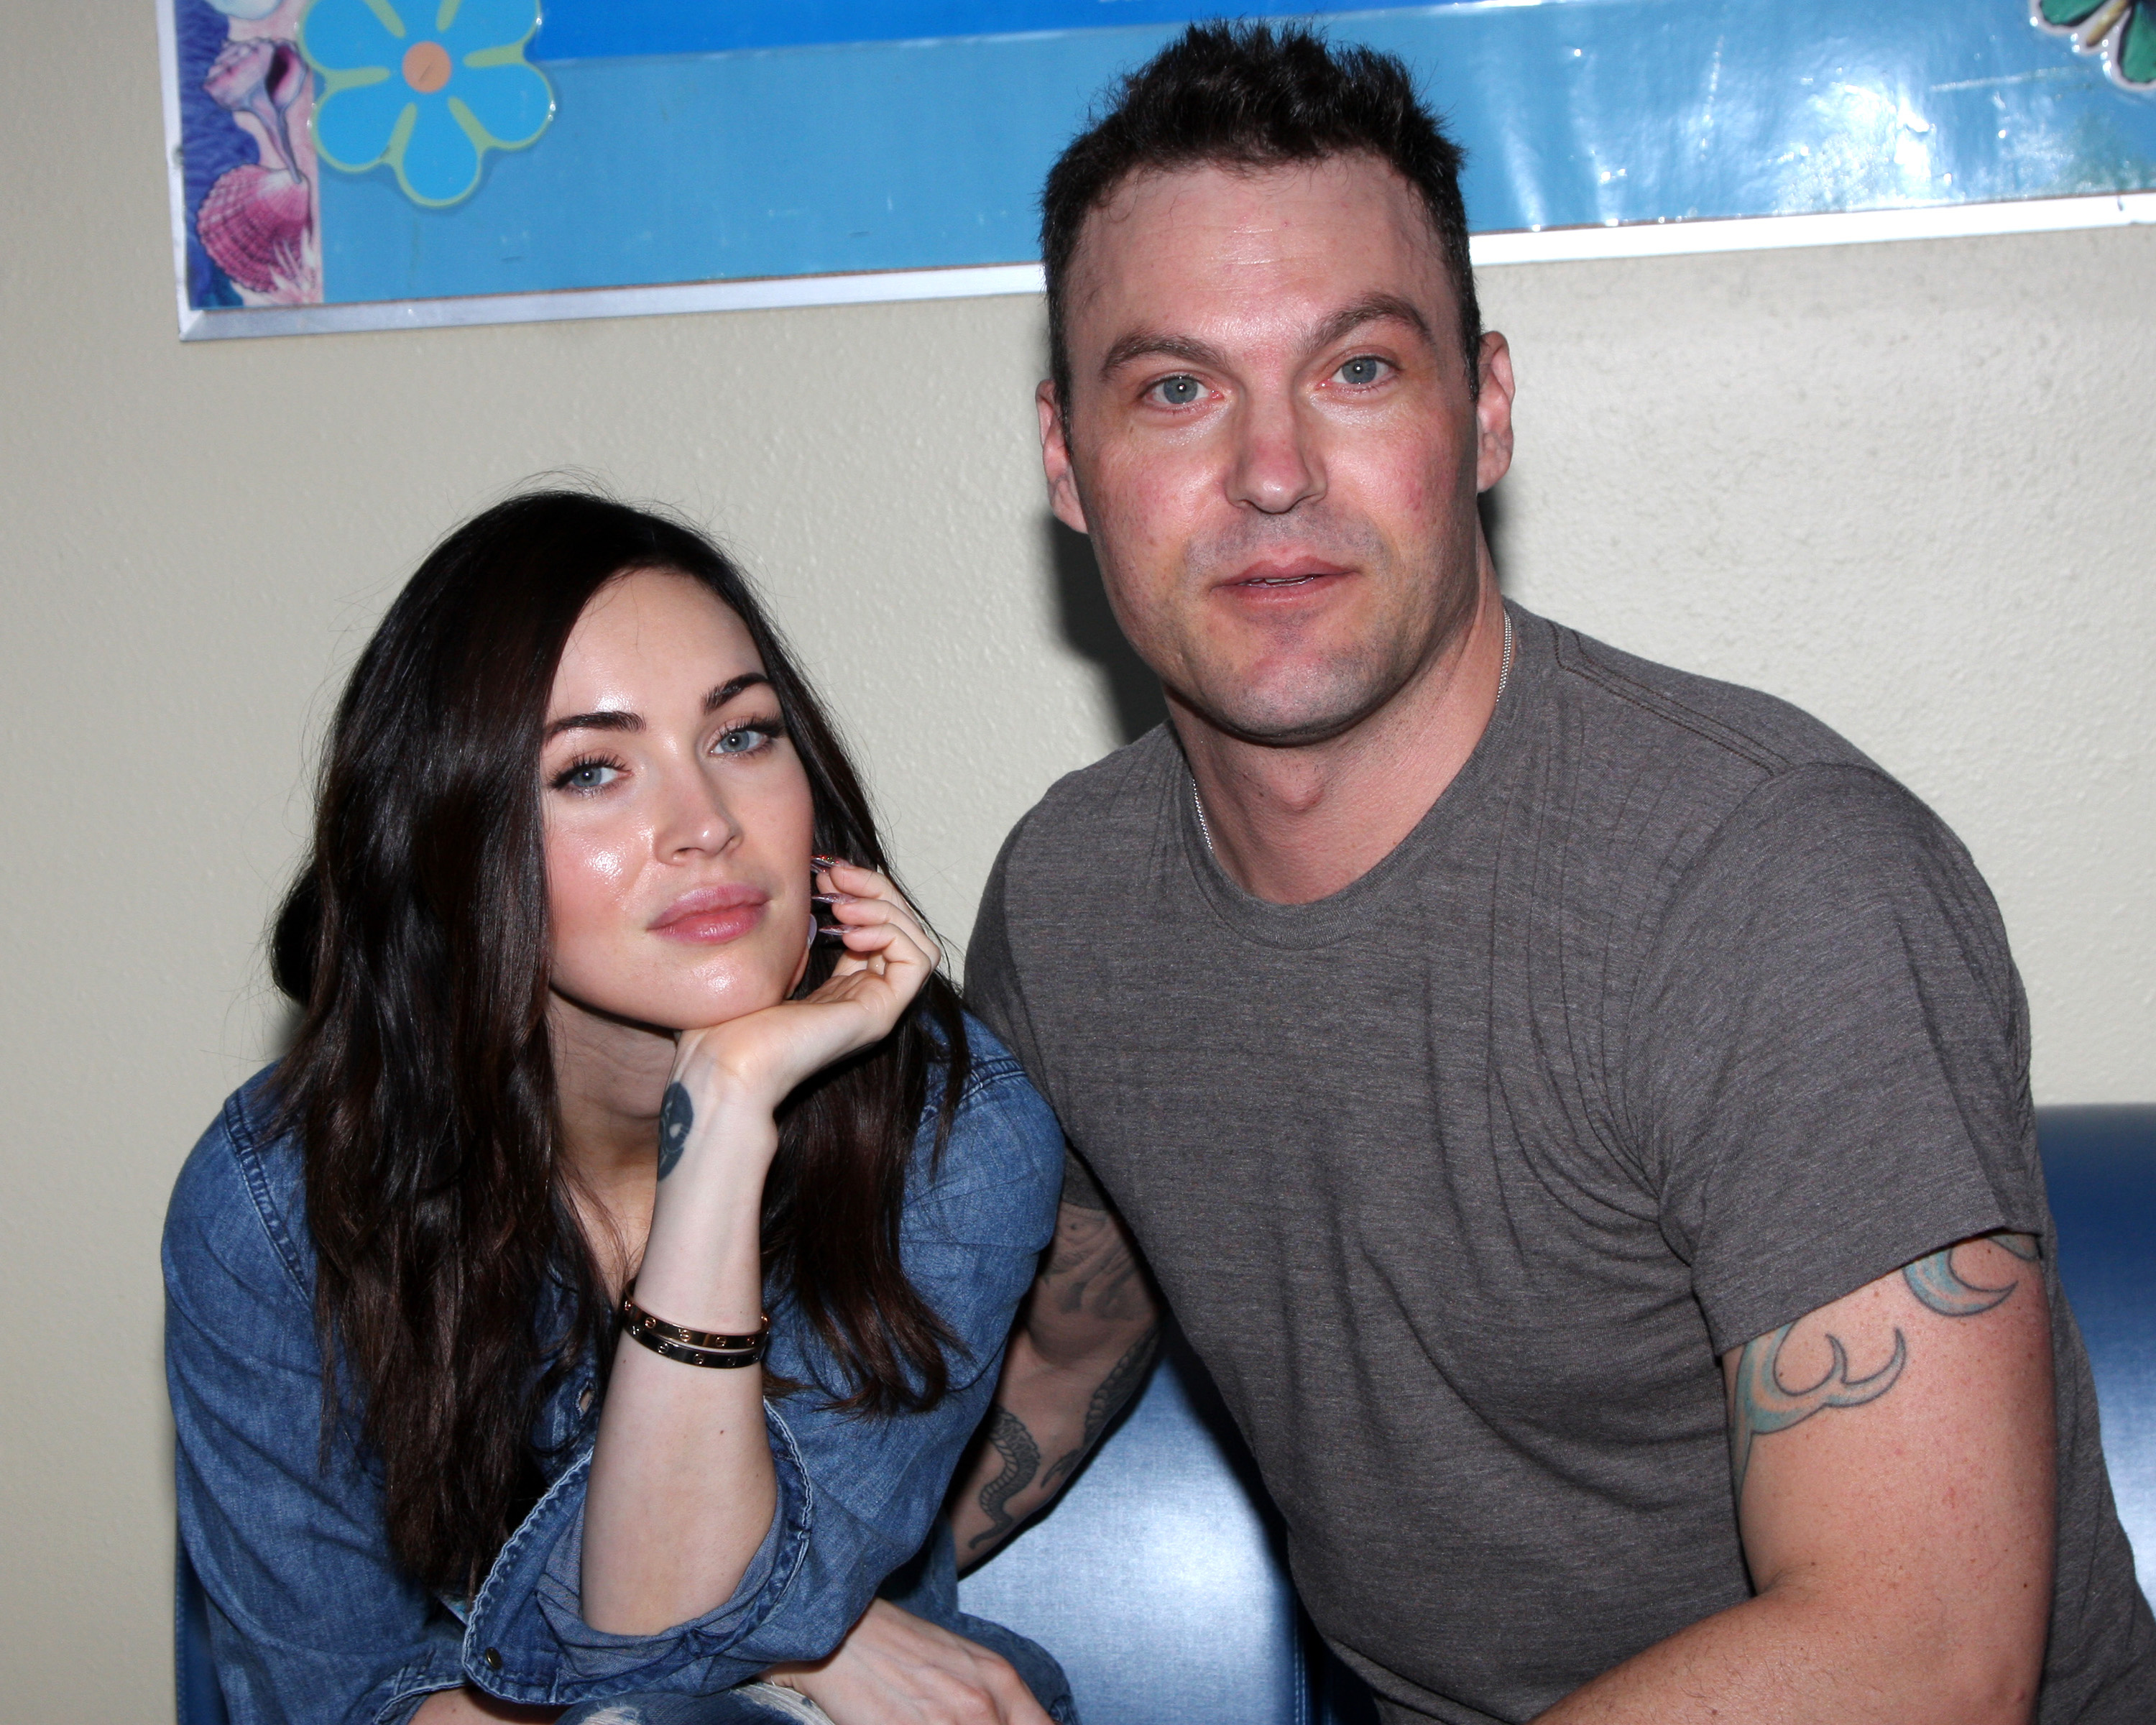 Megan Fox and Brian Austin Green celebrity facts